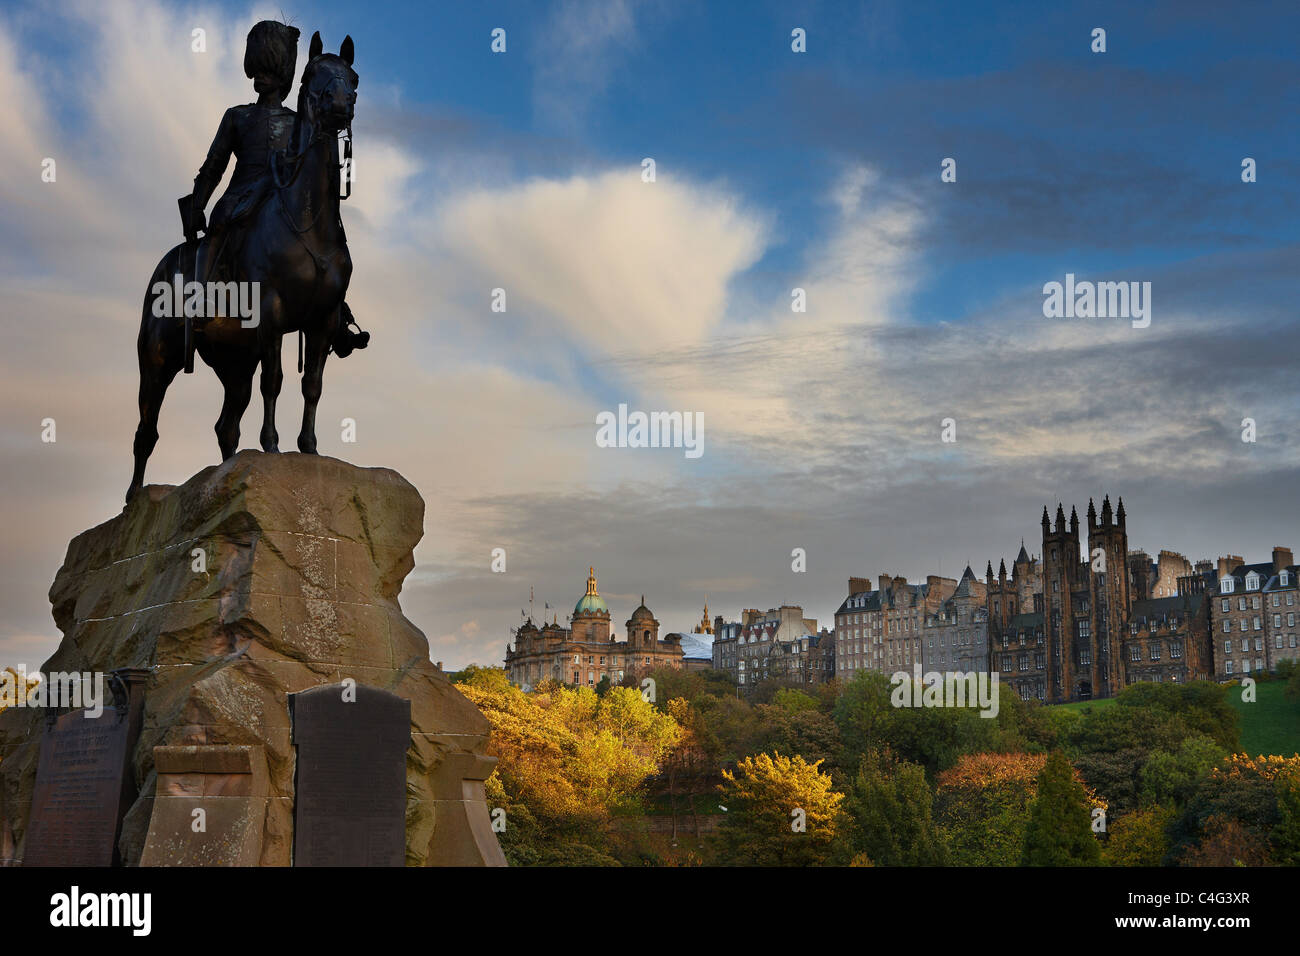 memorial to the Royal Scots Greys, Princess Street, Edinburgh, Scotland - Stock Image